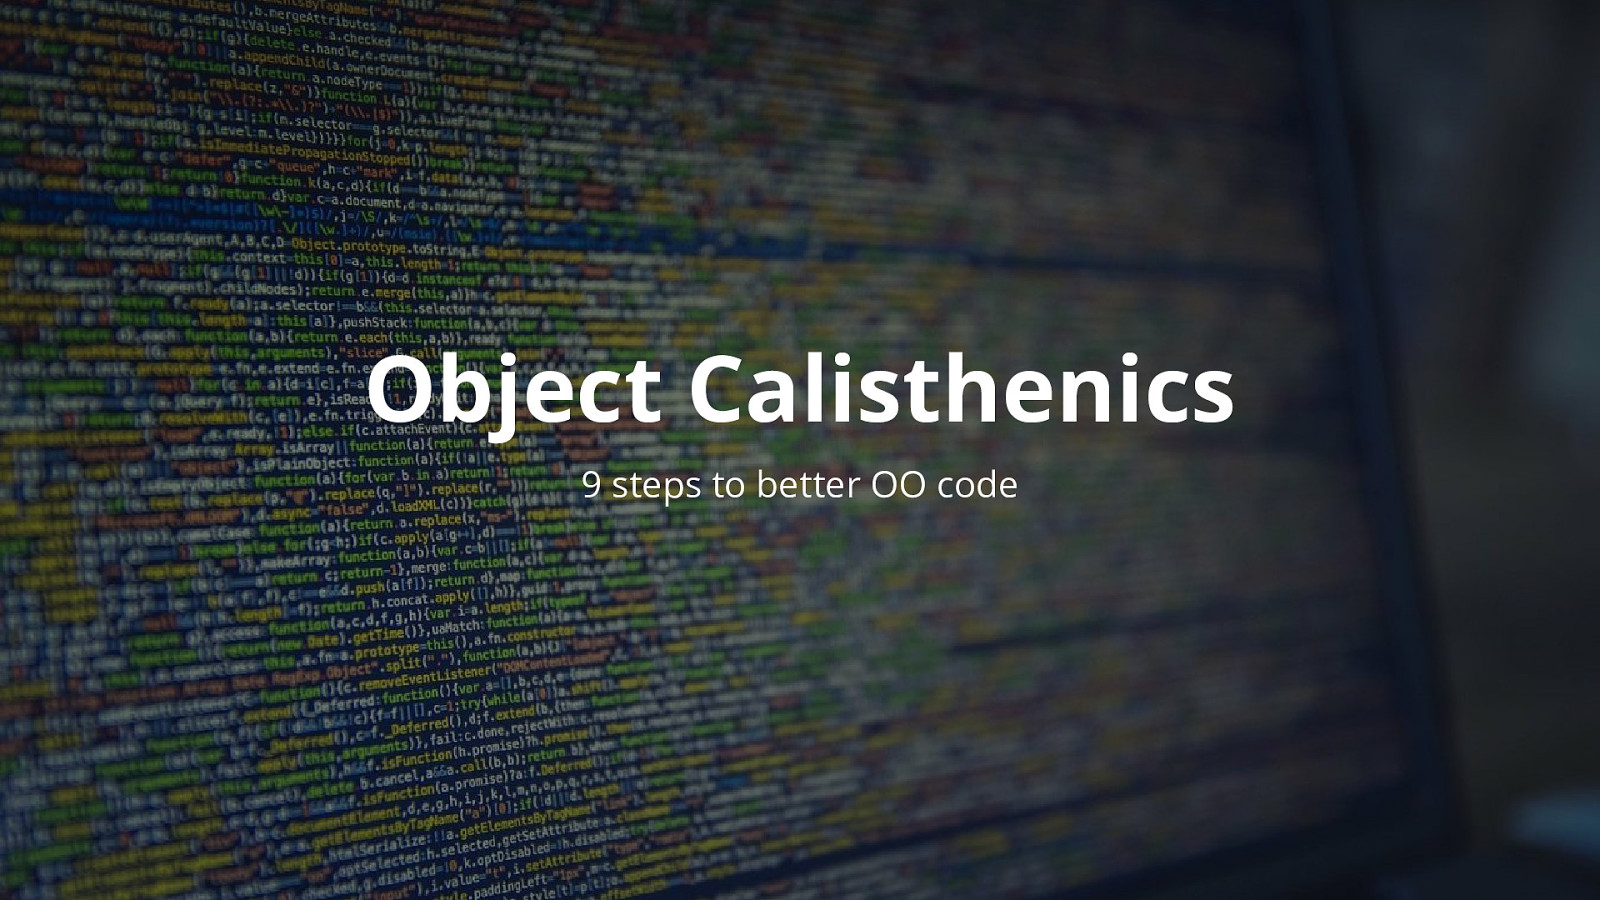 Object Calisthenics - 9 steps to better OO code